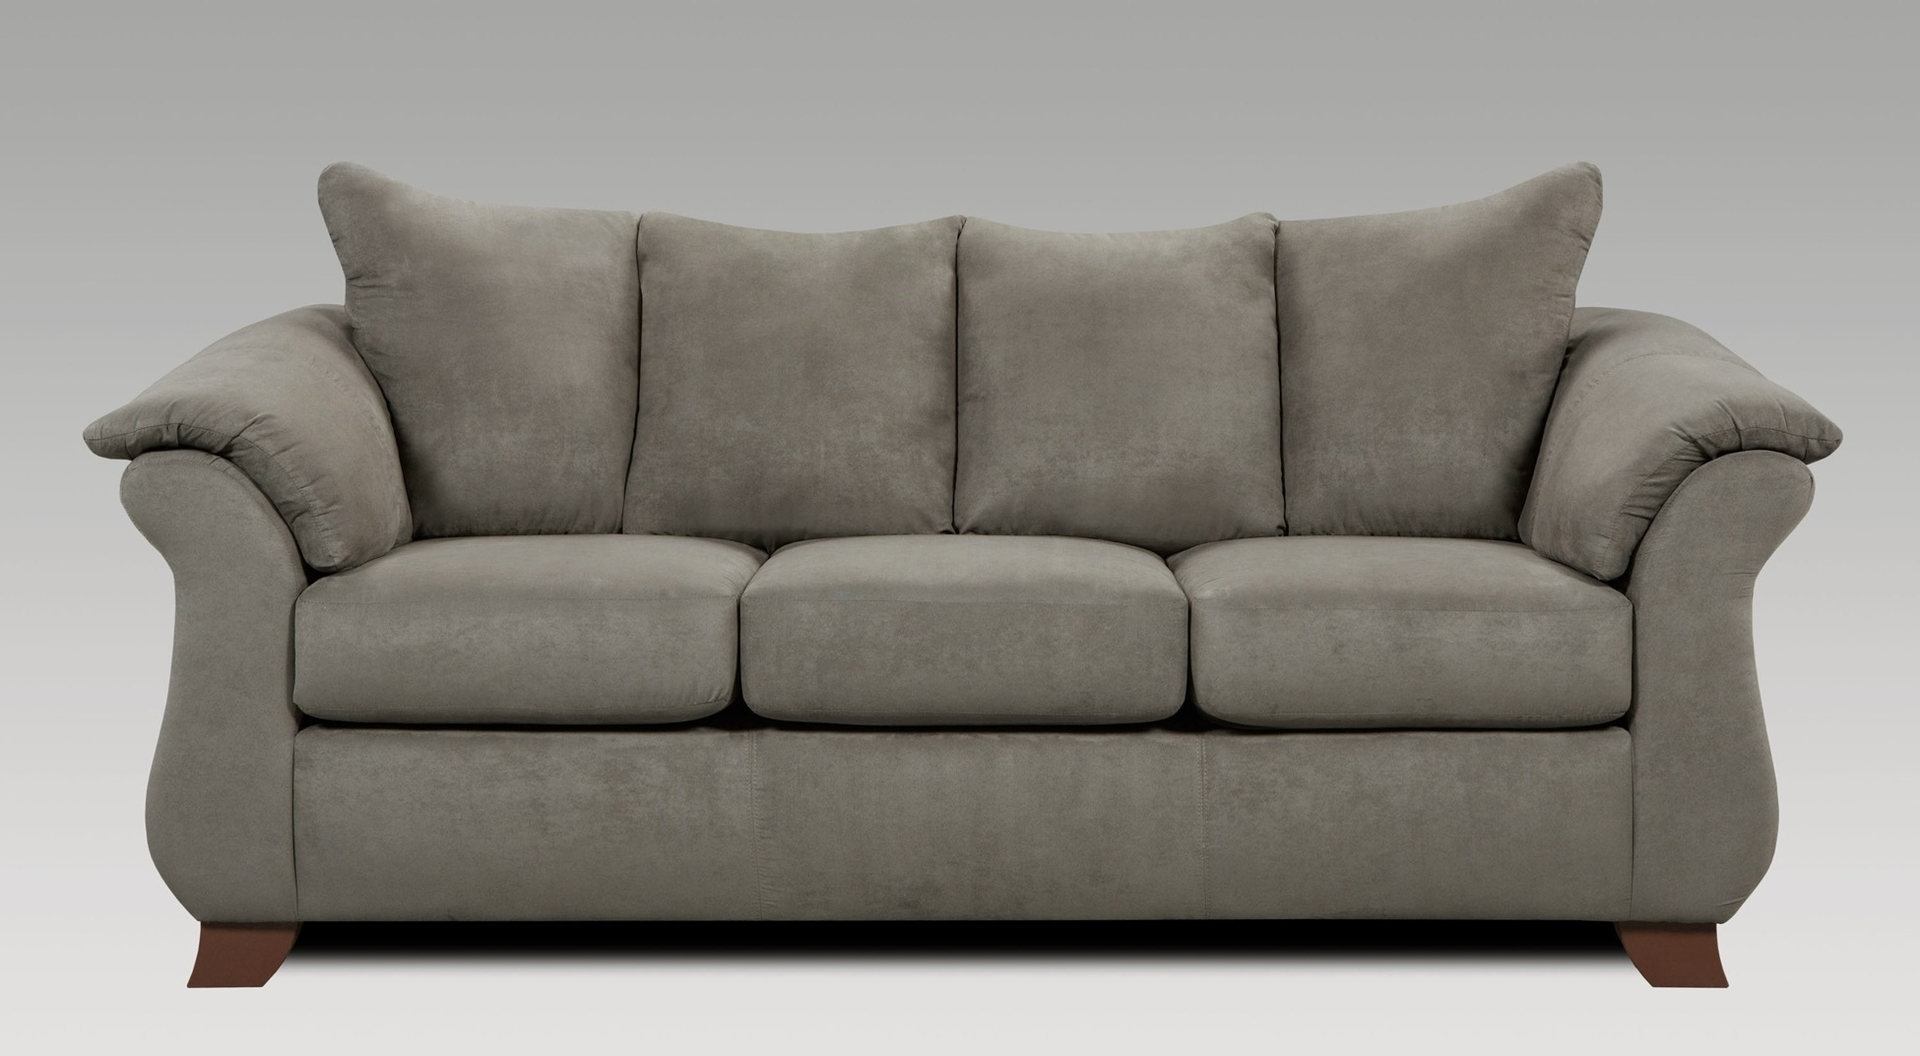 Well Known Sofas: Tuscaloosa, Al: Southeastern Furniture With Tuscaloosa Sectional Sofas (View 13 of 15)